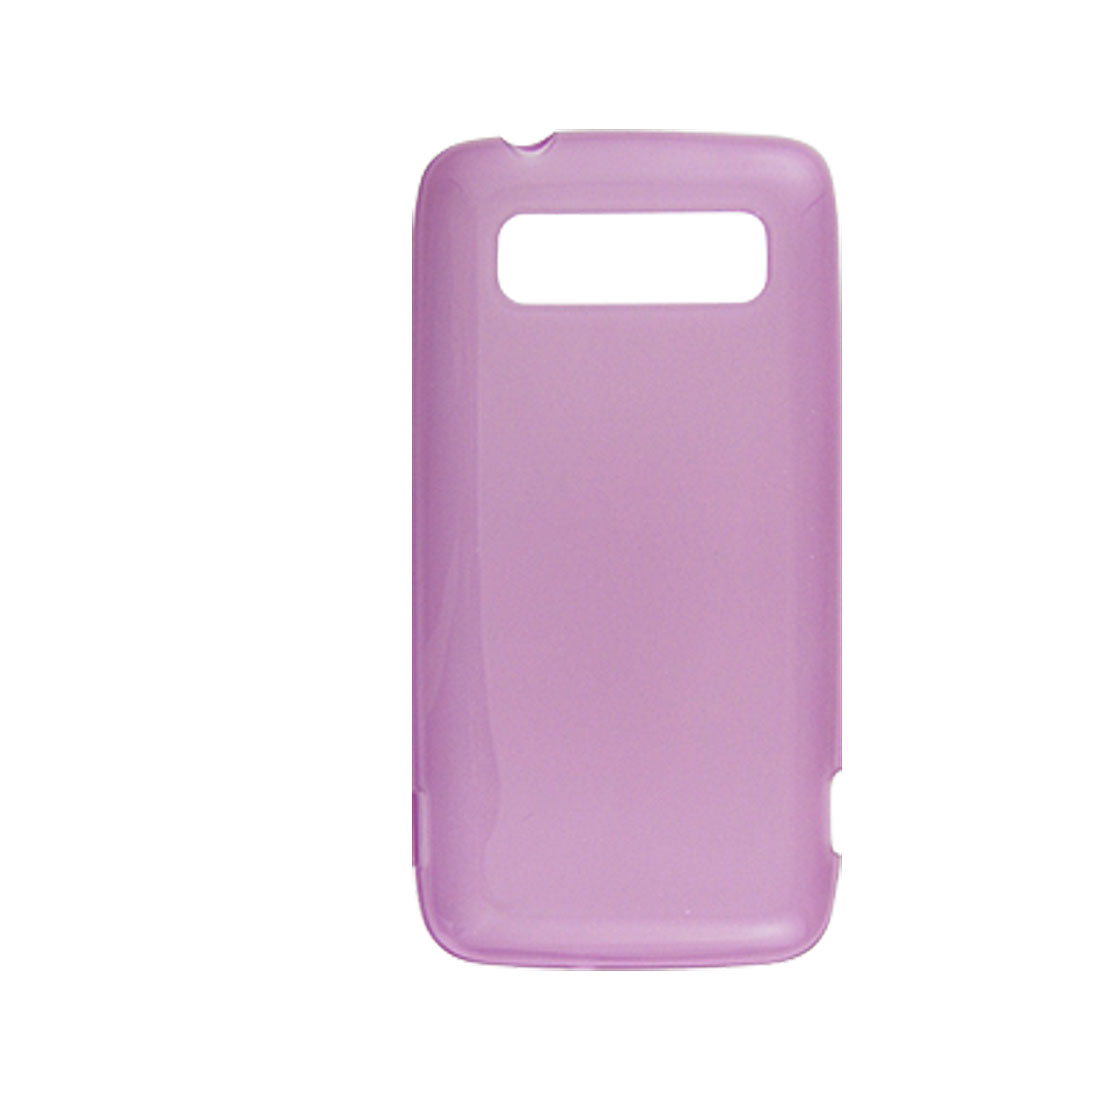 Clear Purple Soft Plastic Case Cover for HTC 7 Trophy Spark